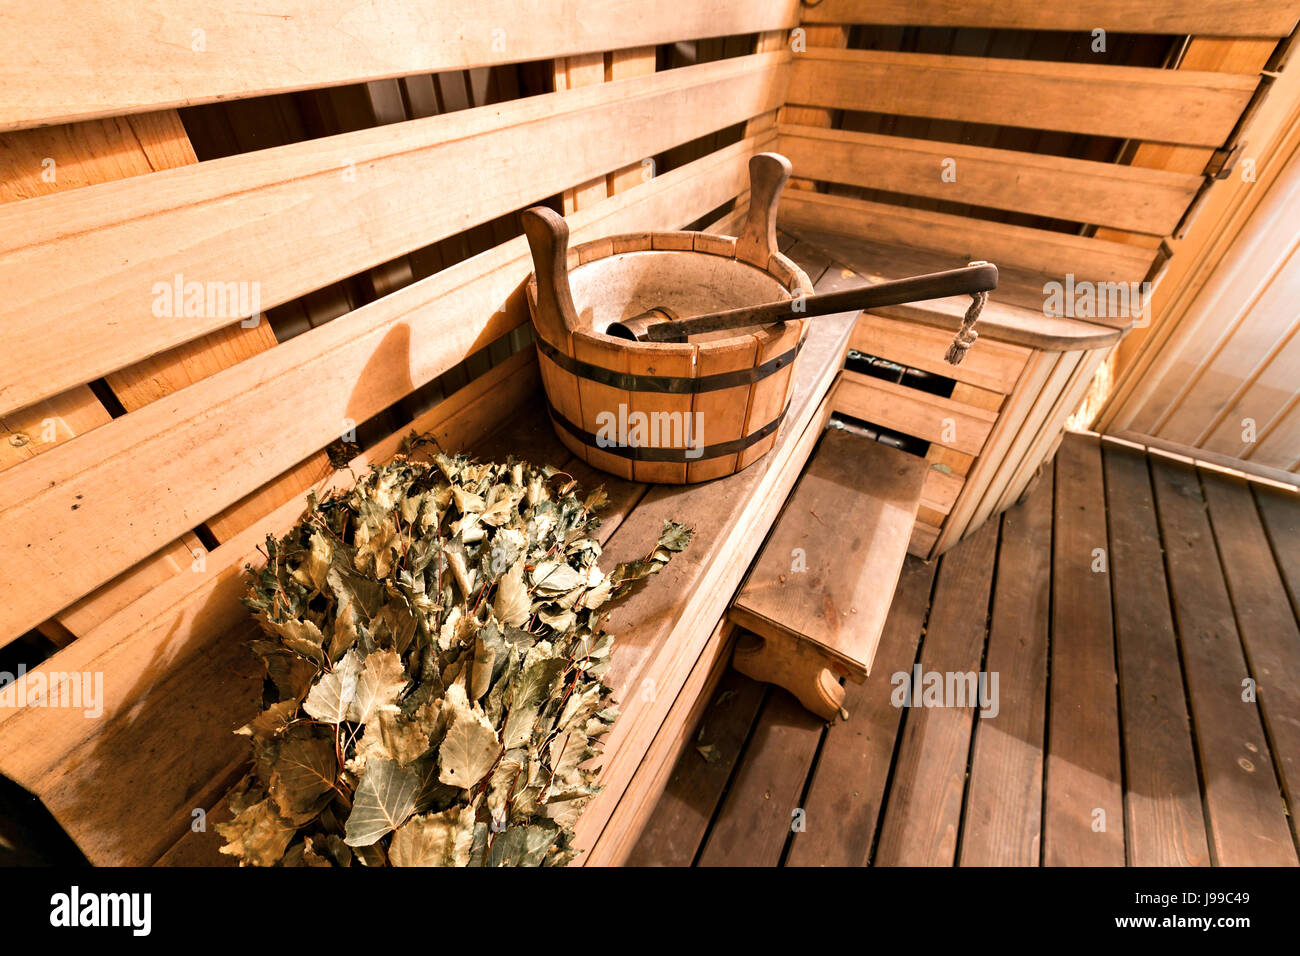 Empty wooden sauna room with ladle, bucket ready to be used - Stock Image